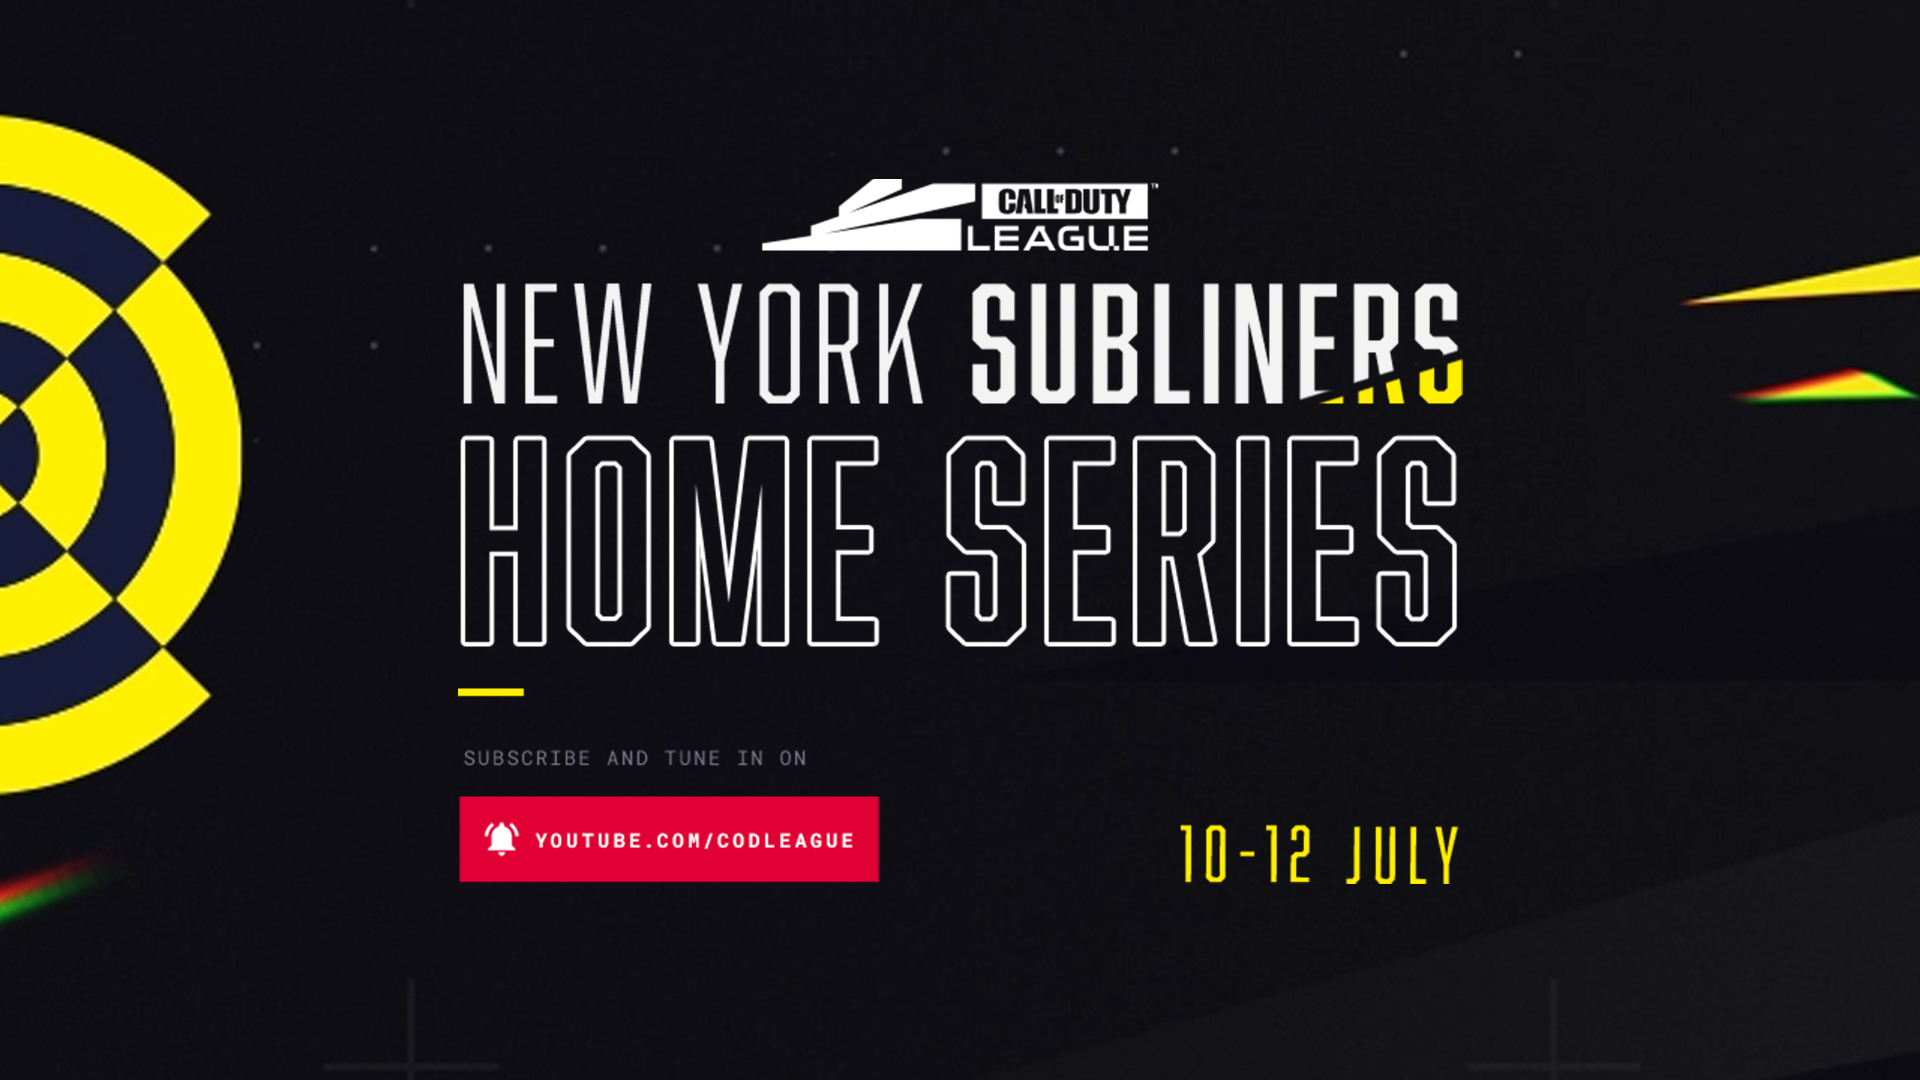 CDL Week 11 – New York Subliners Home Series